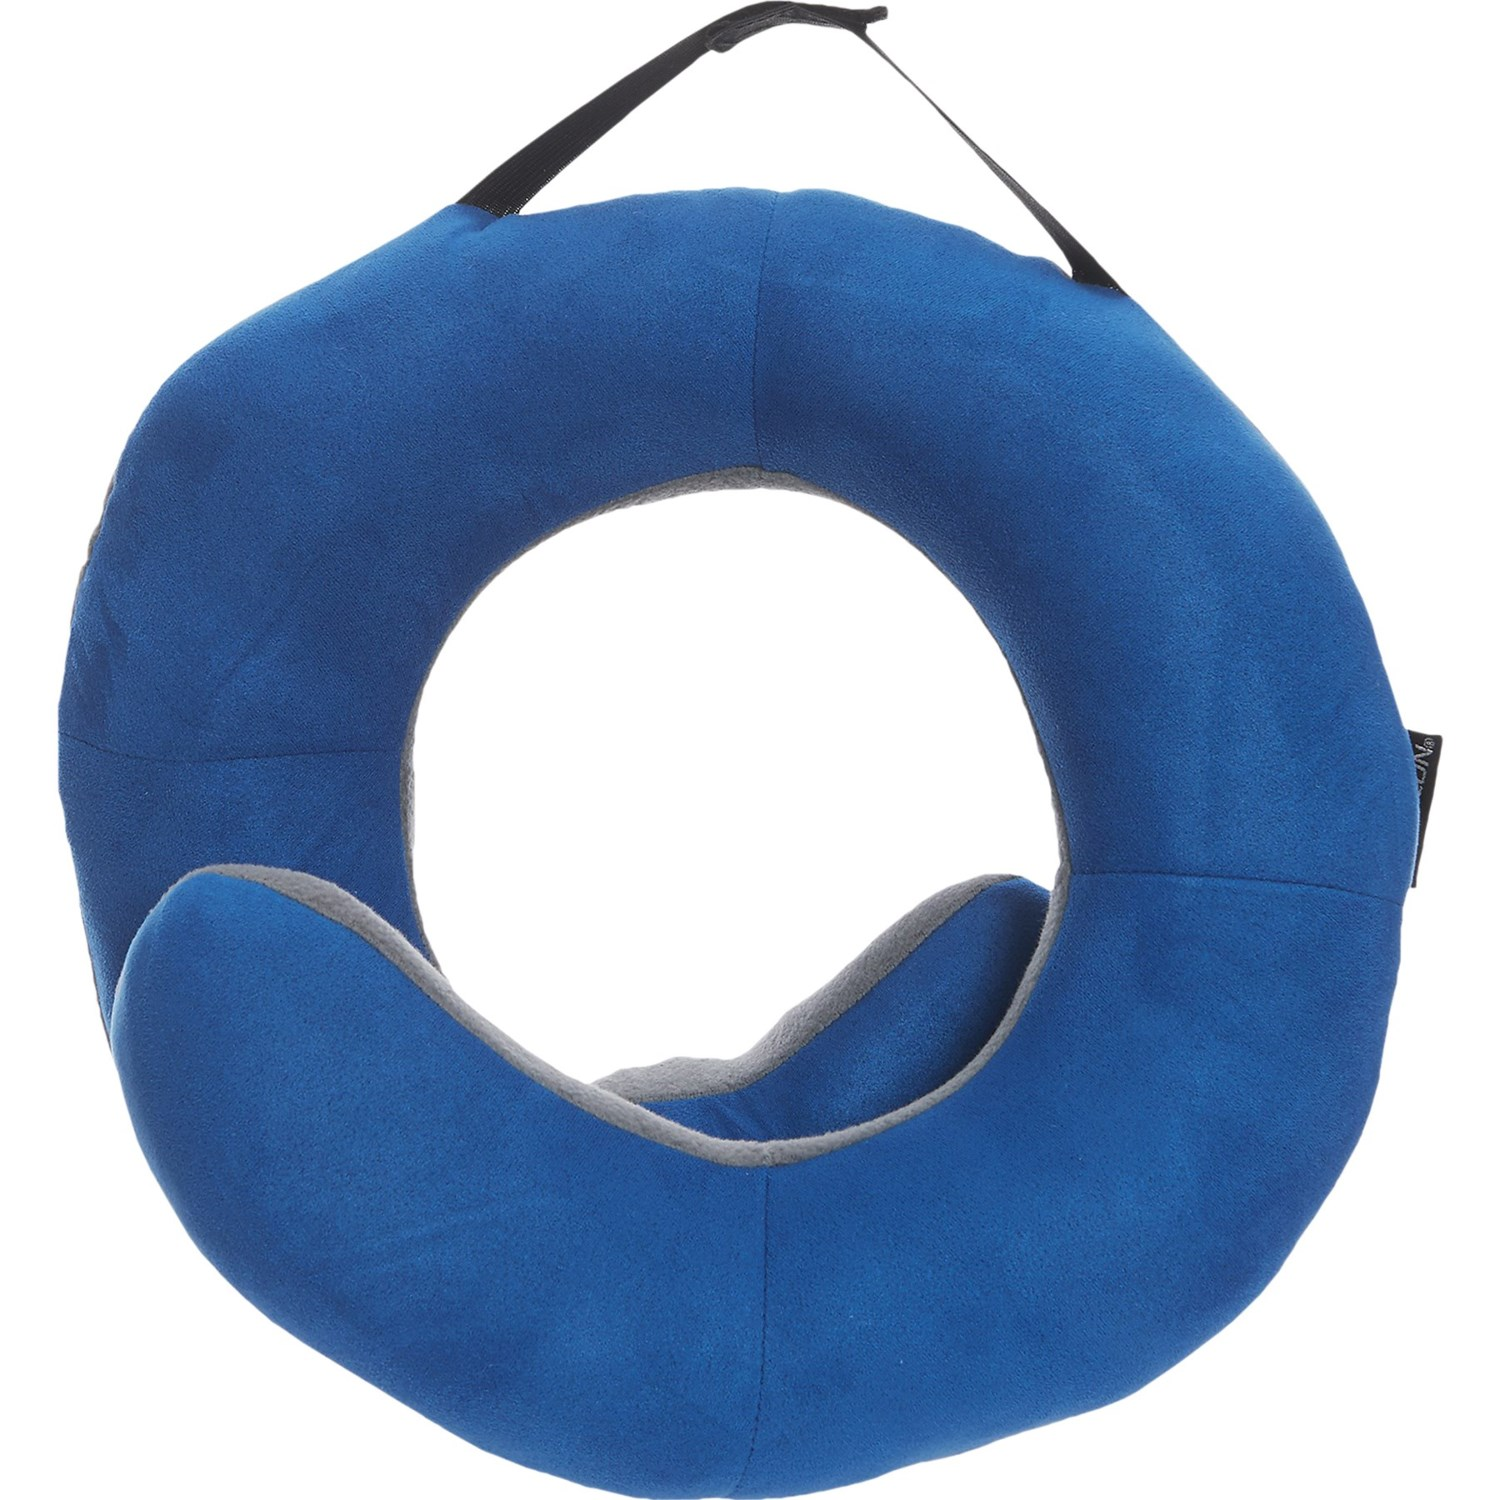 Blue Soft Cotton Travel Pillow Guard